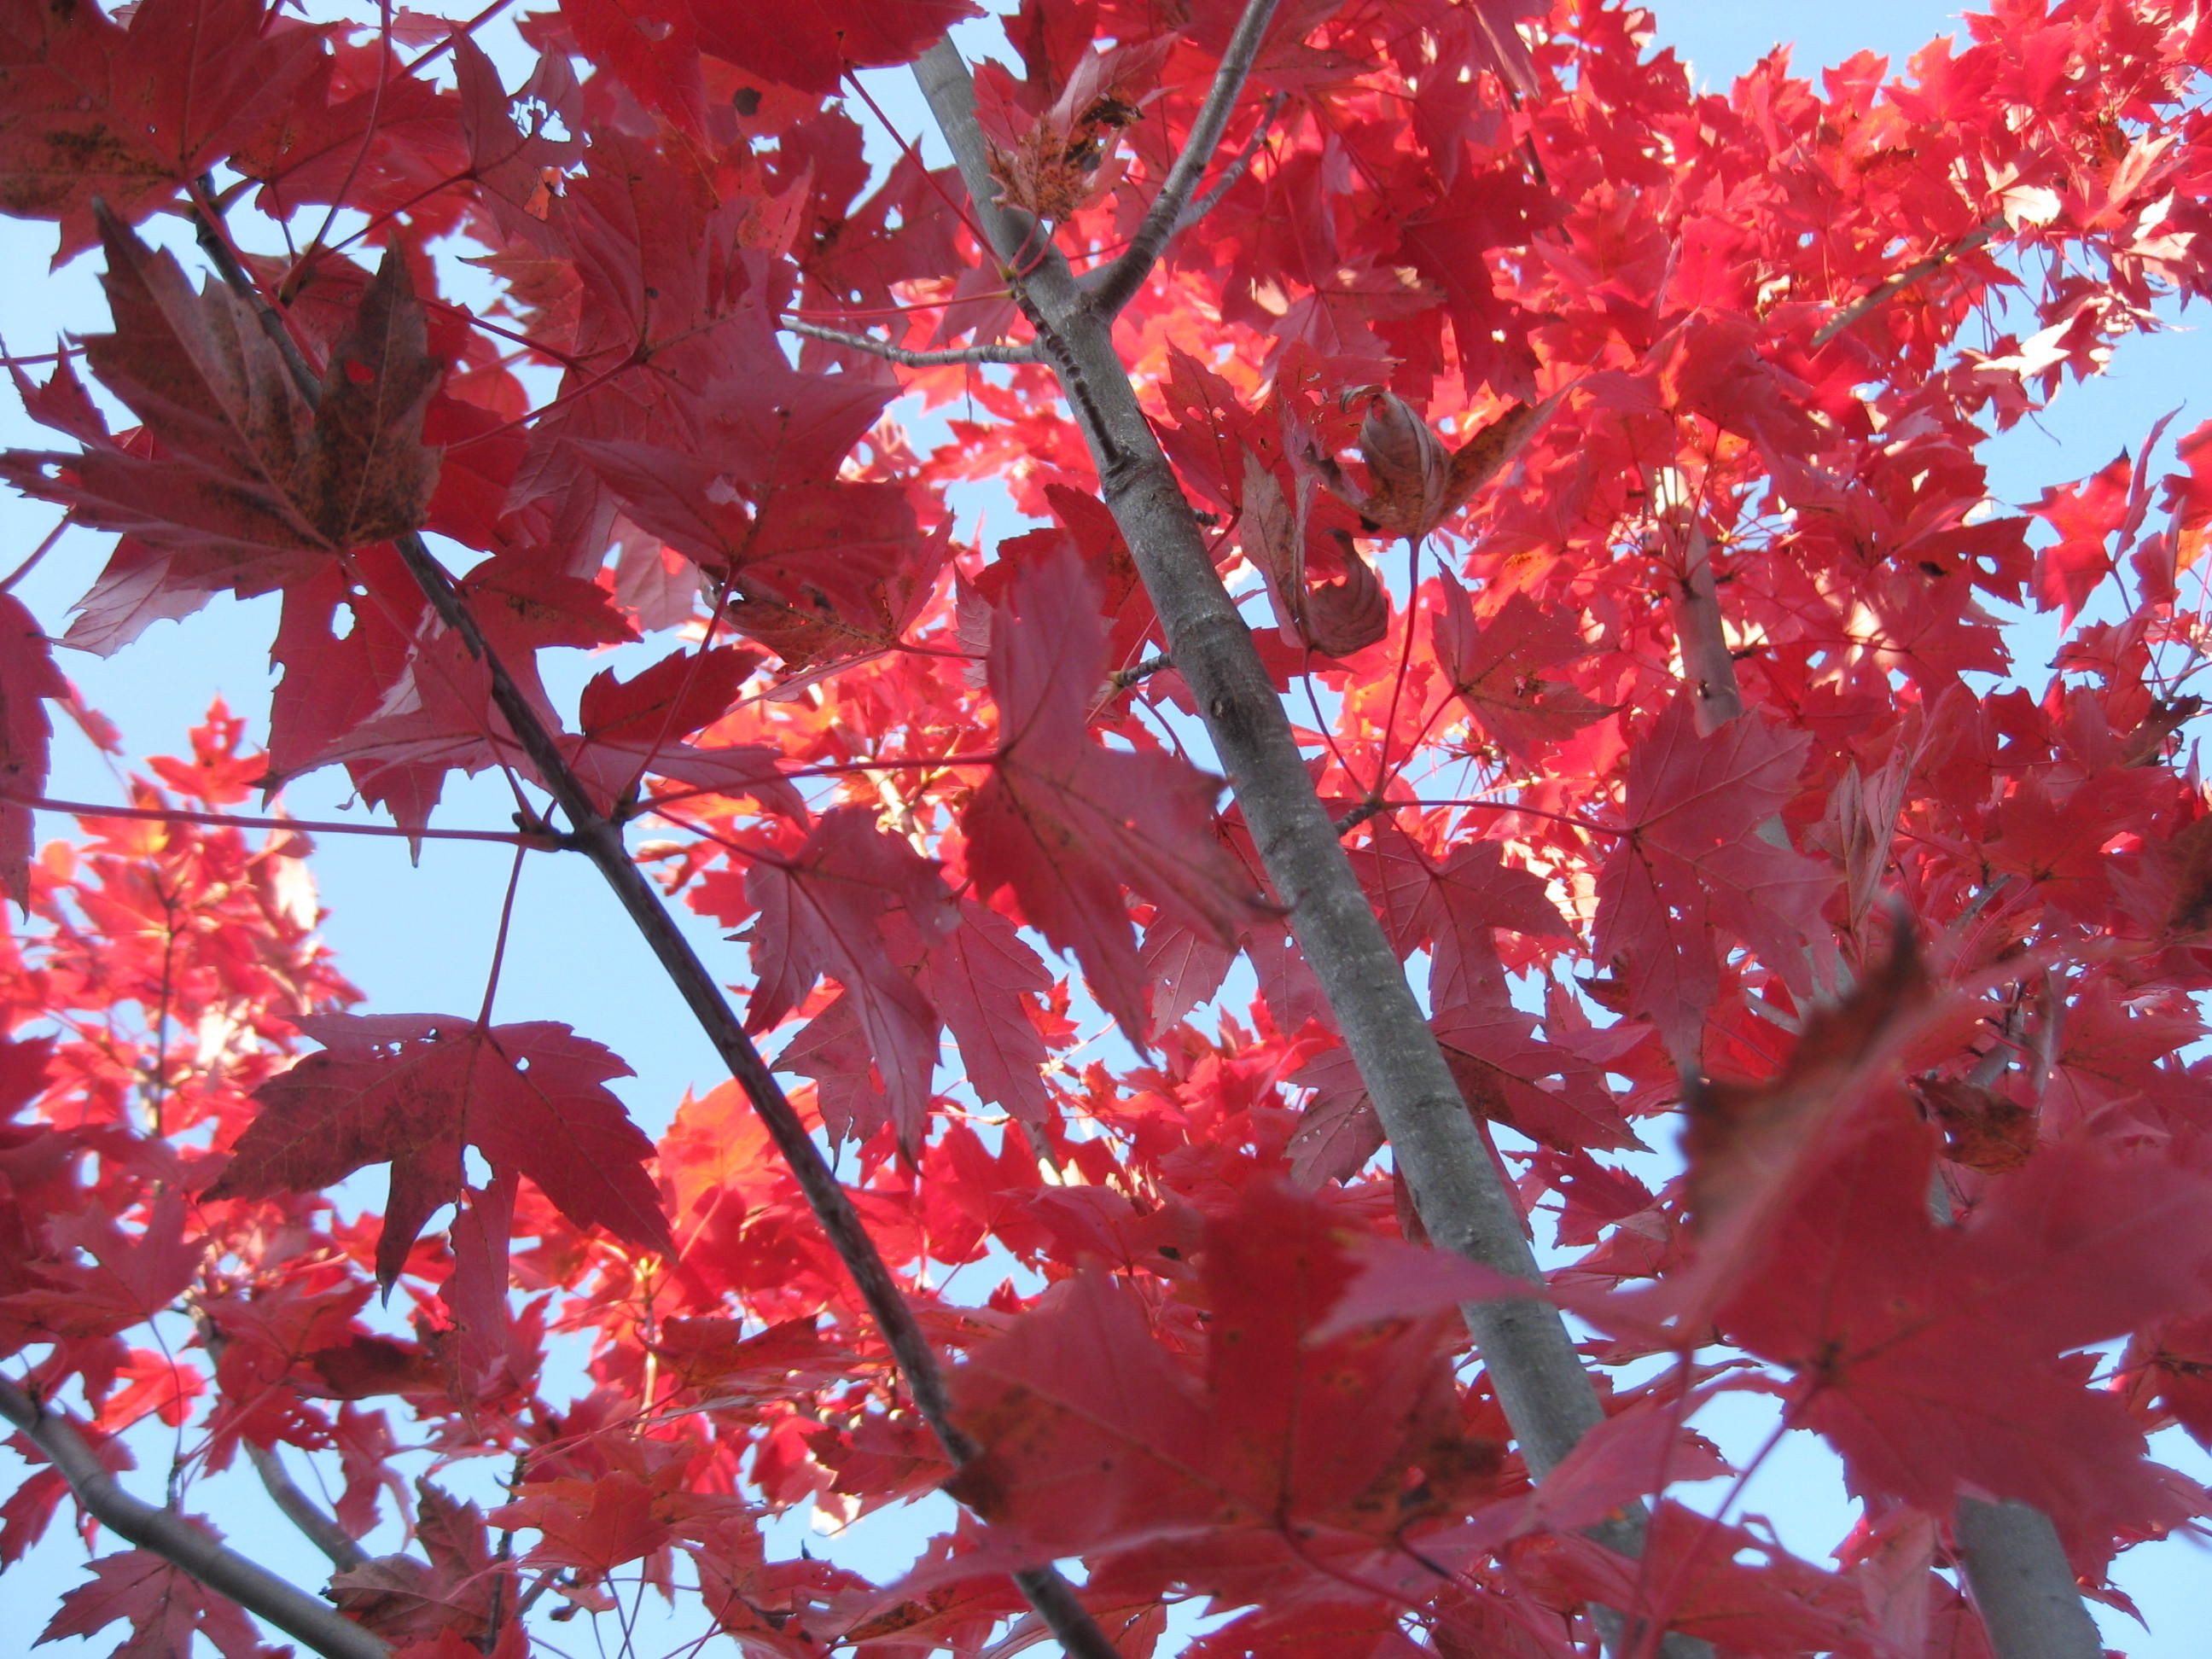 I love Fall for this very reason - RED TREES